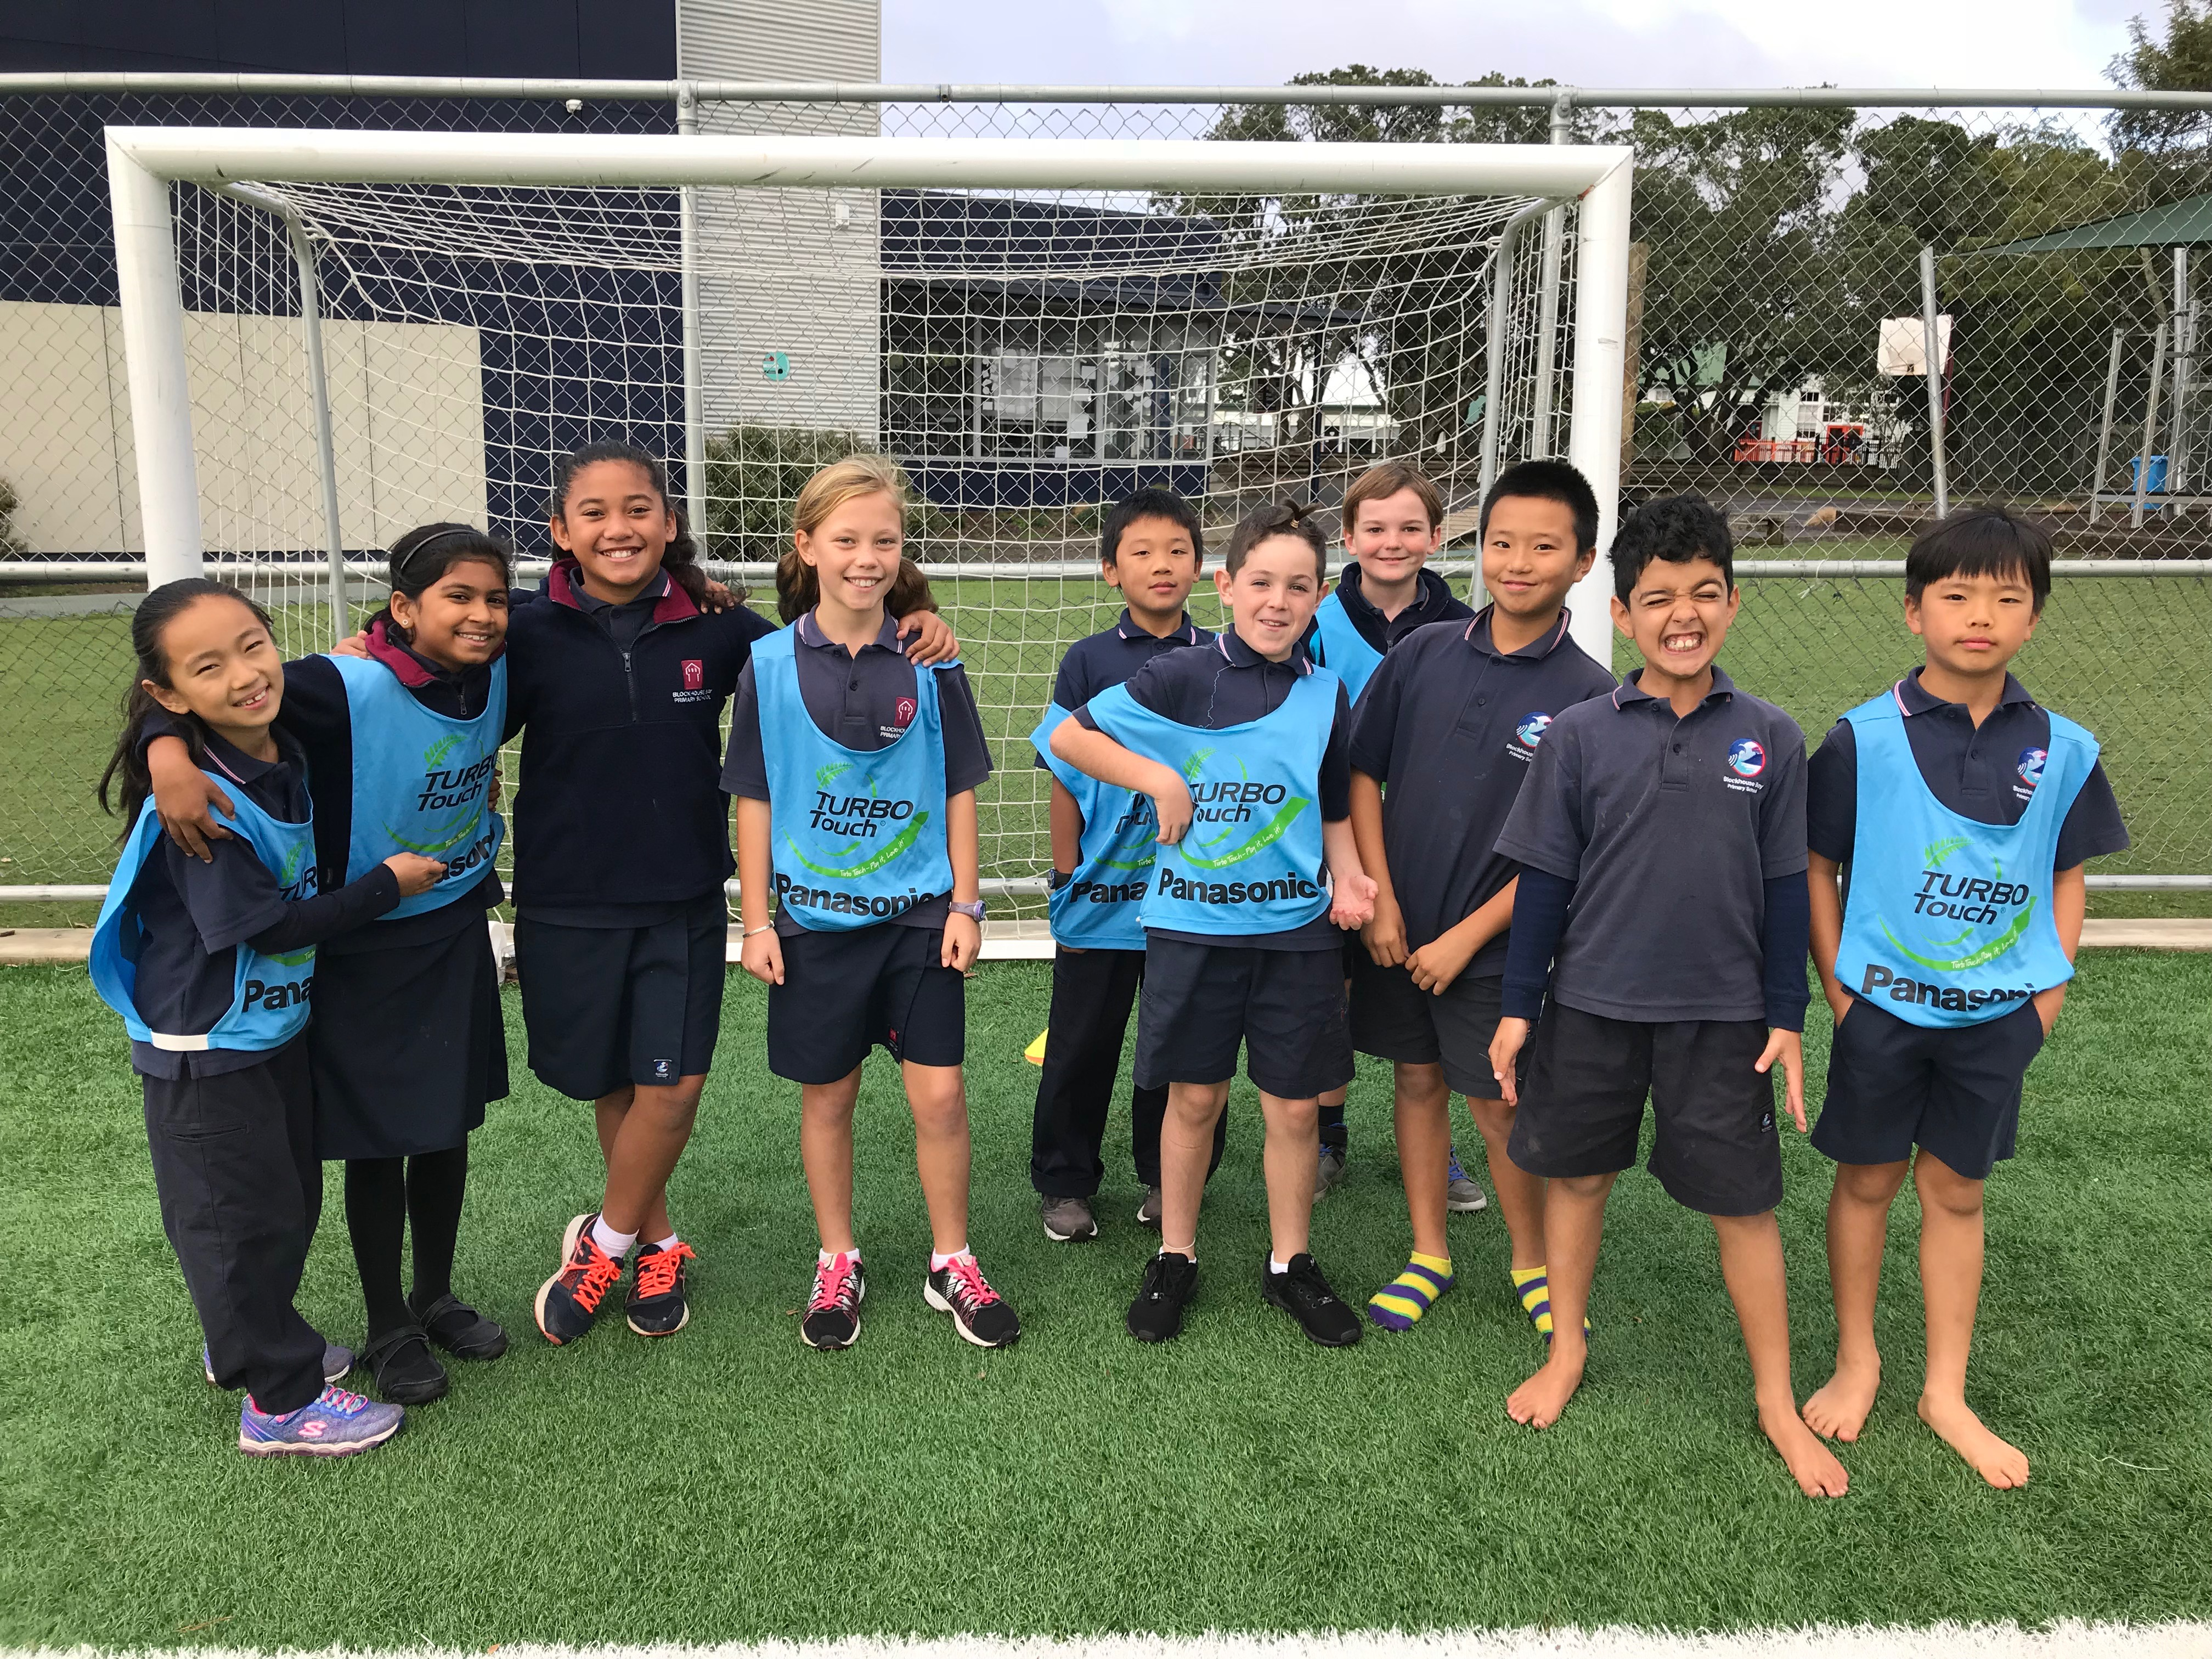 Blockhouse Bay Primary School - Term 2 Kiwisport